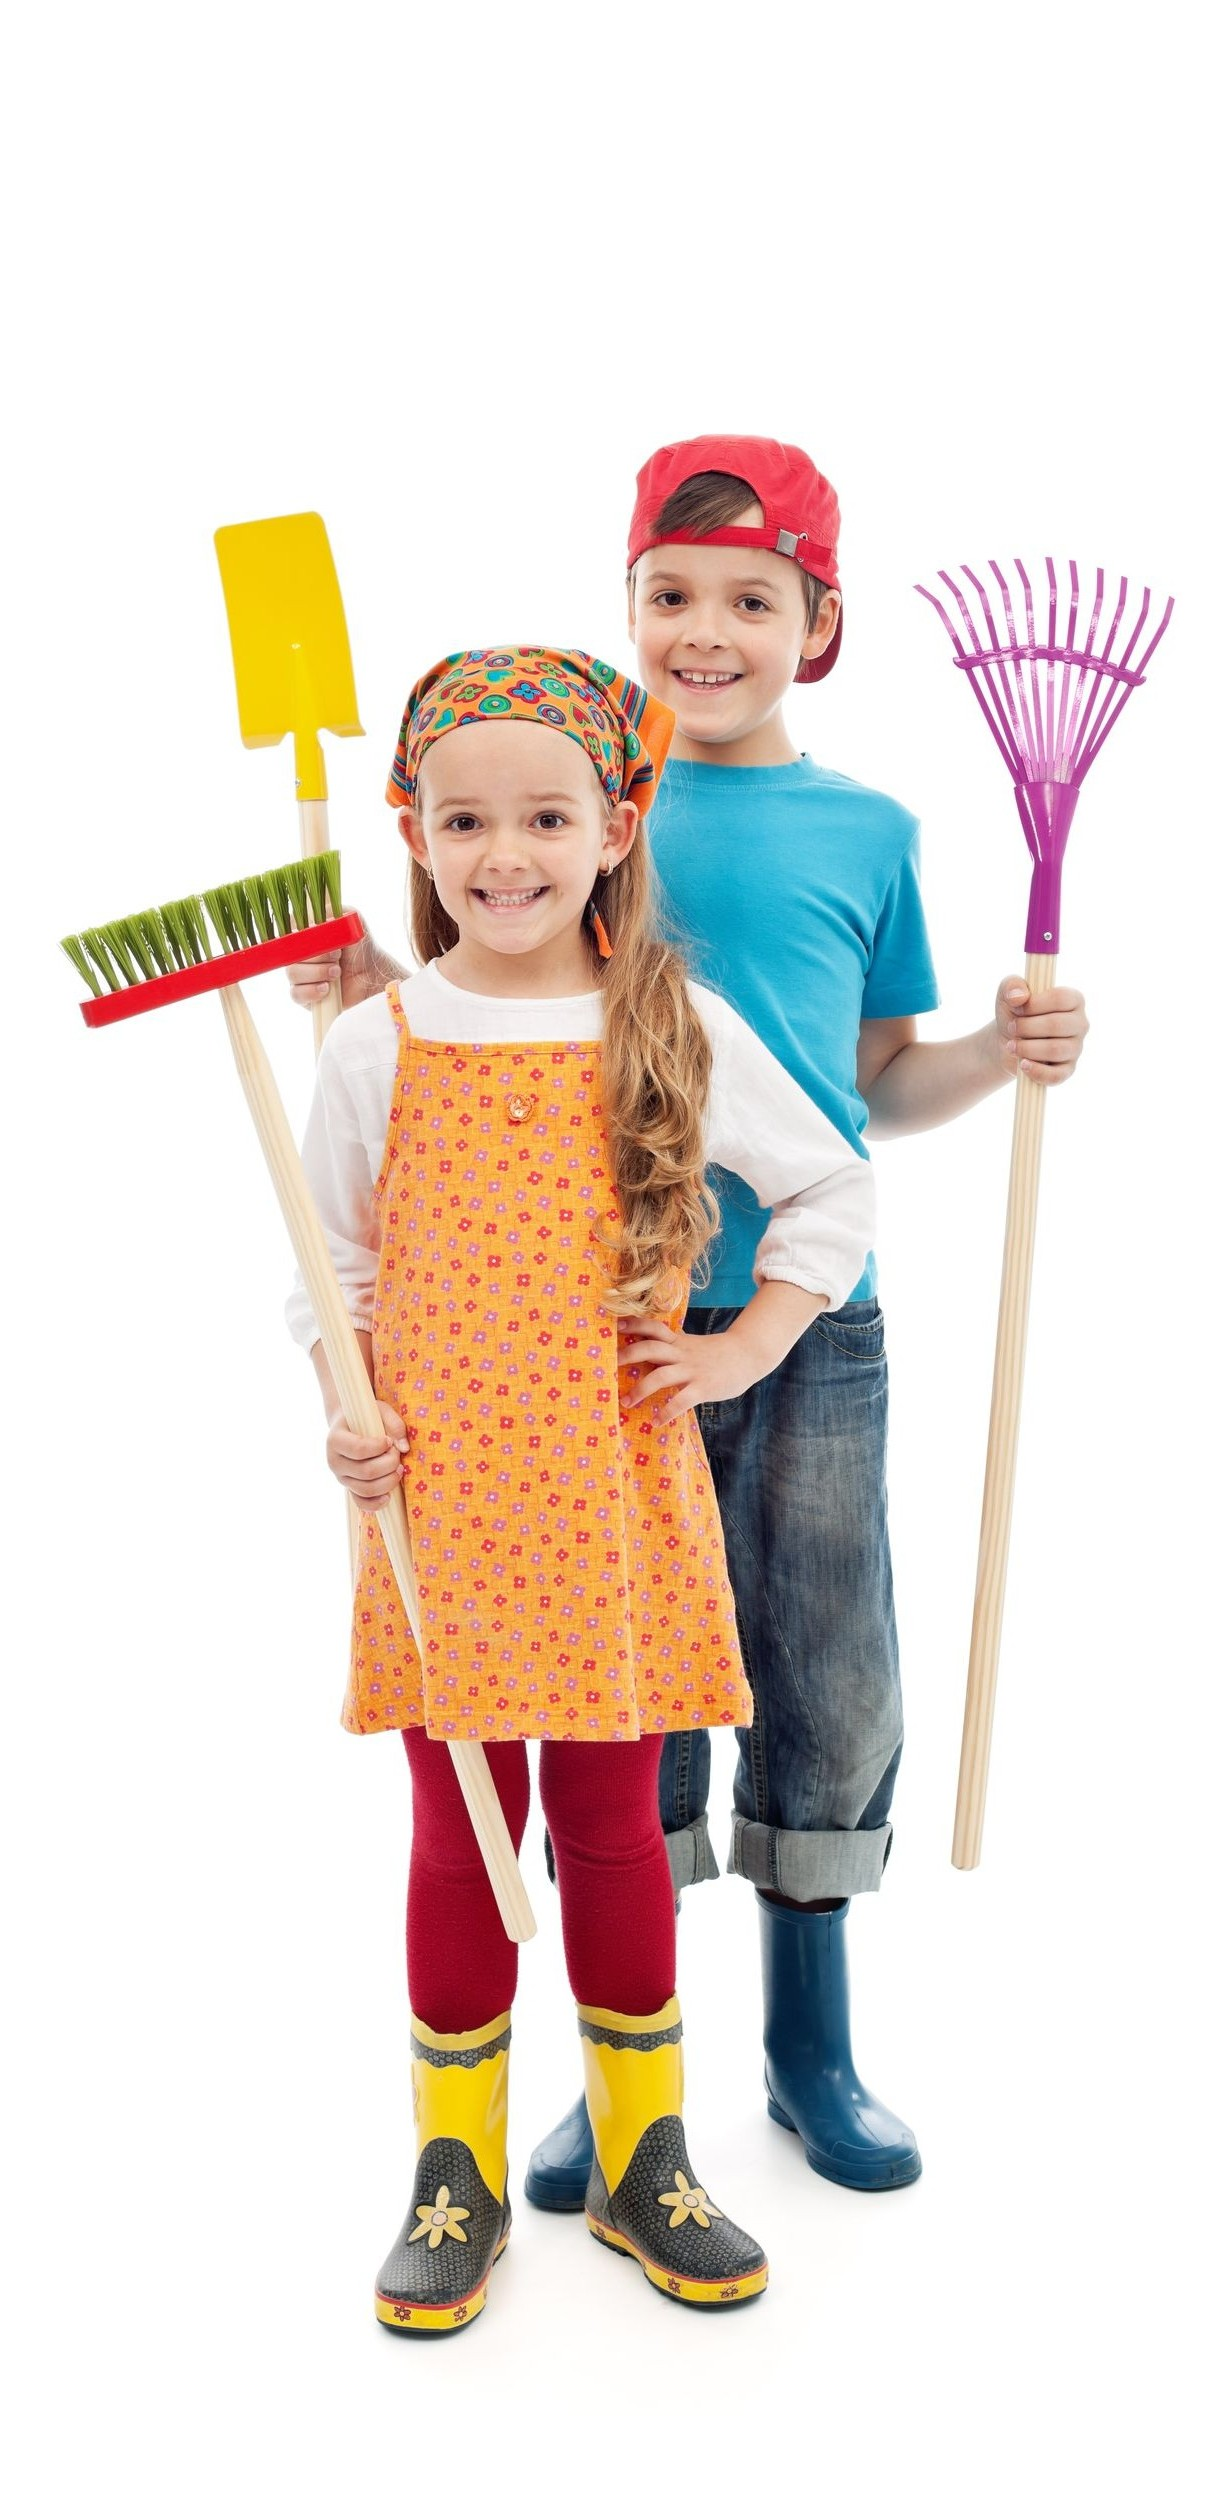 Spring Cleaning? With Your Kids?? YES, it CAN be done!